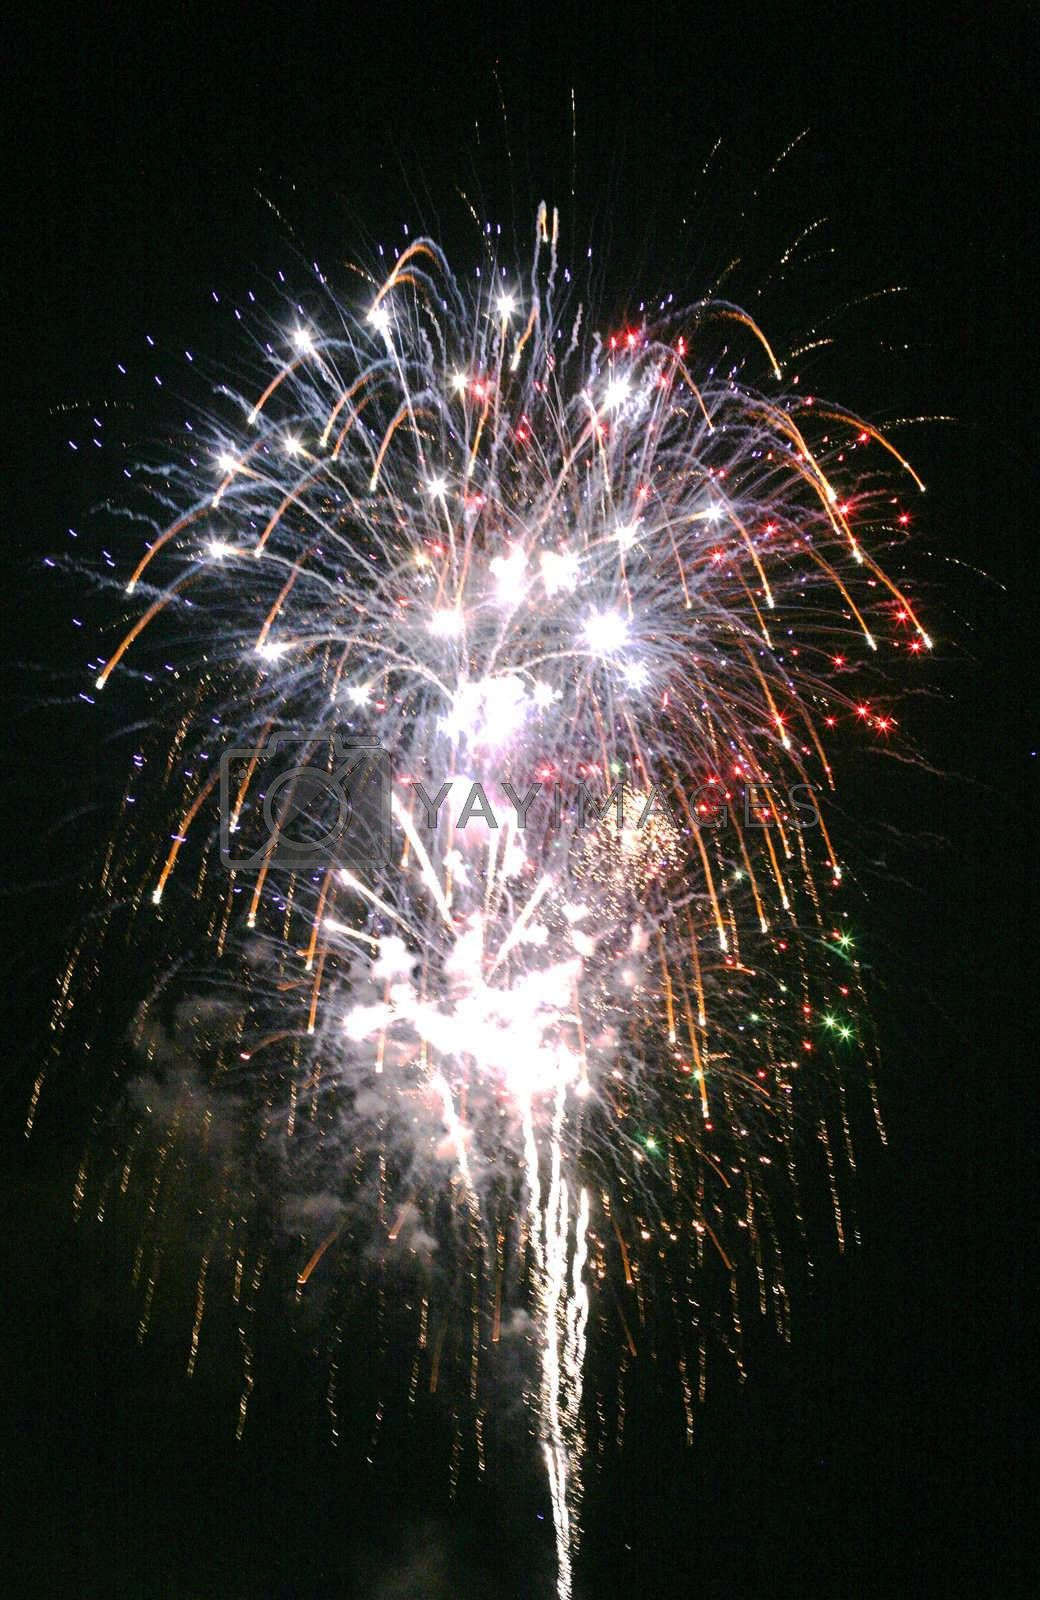 Fireworks display over the night sky.